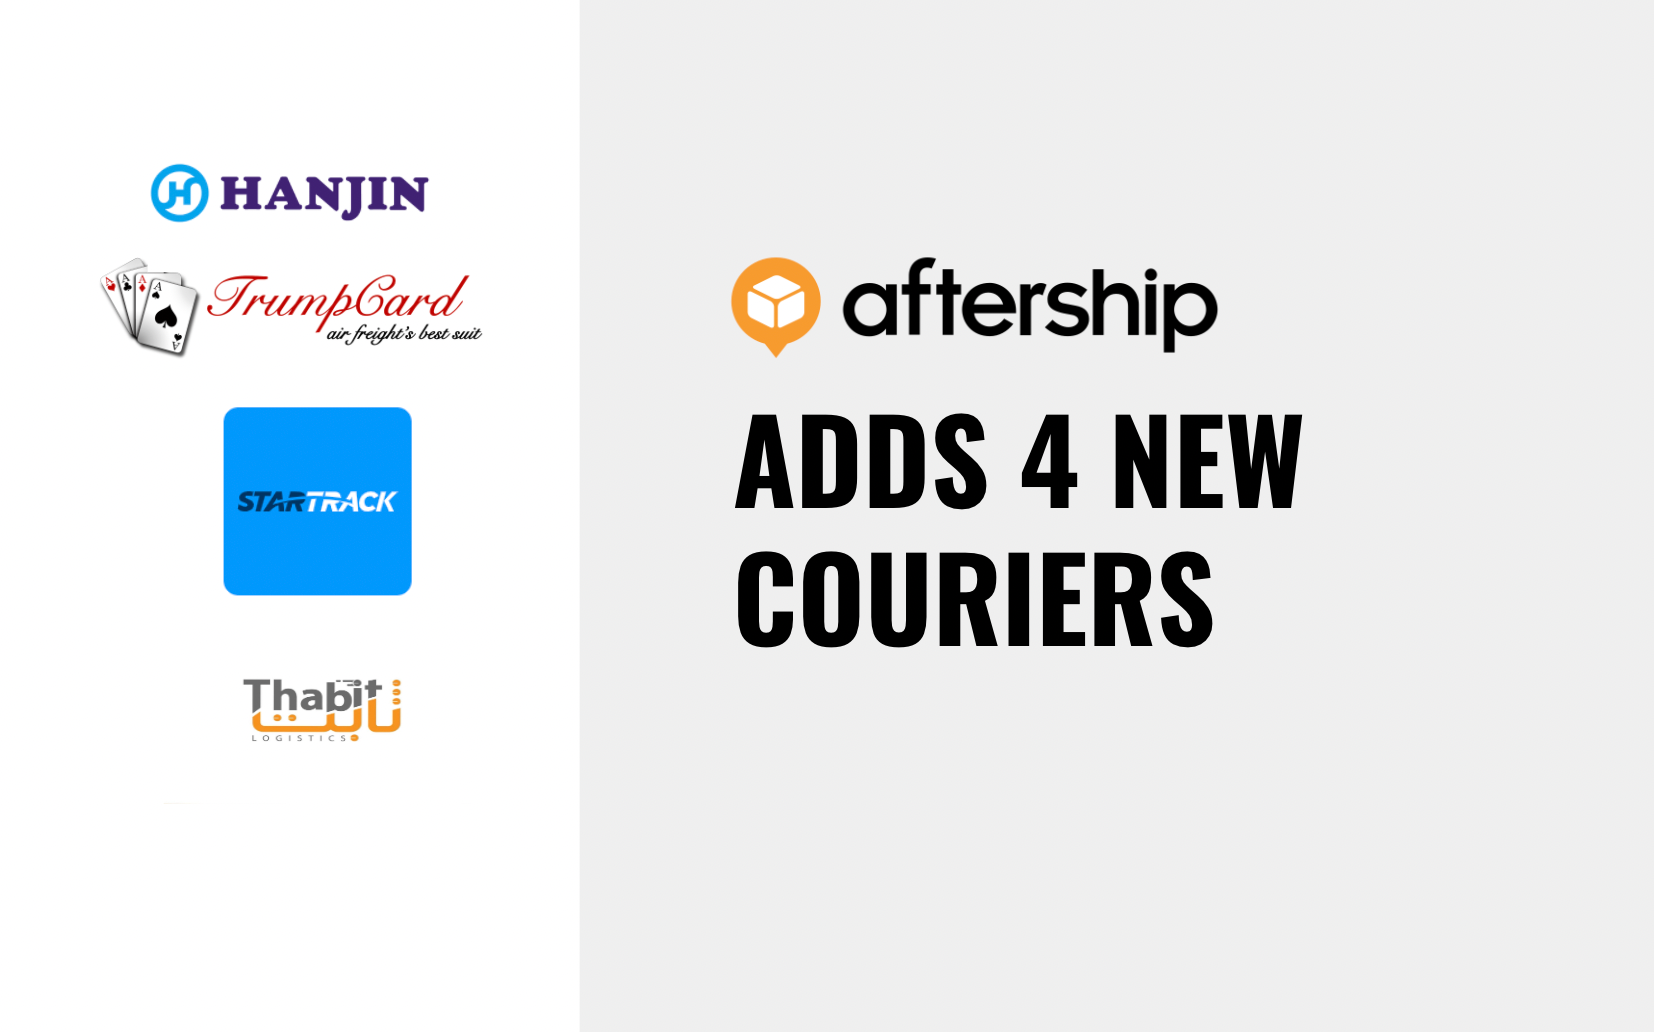 AfterShip adds 4 new couriers this week (2nd Mar 2021 to 8th Mar 2021)